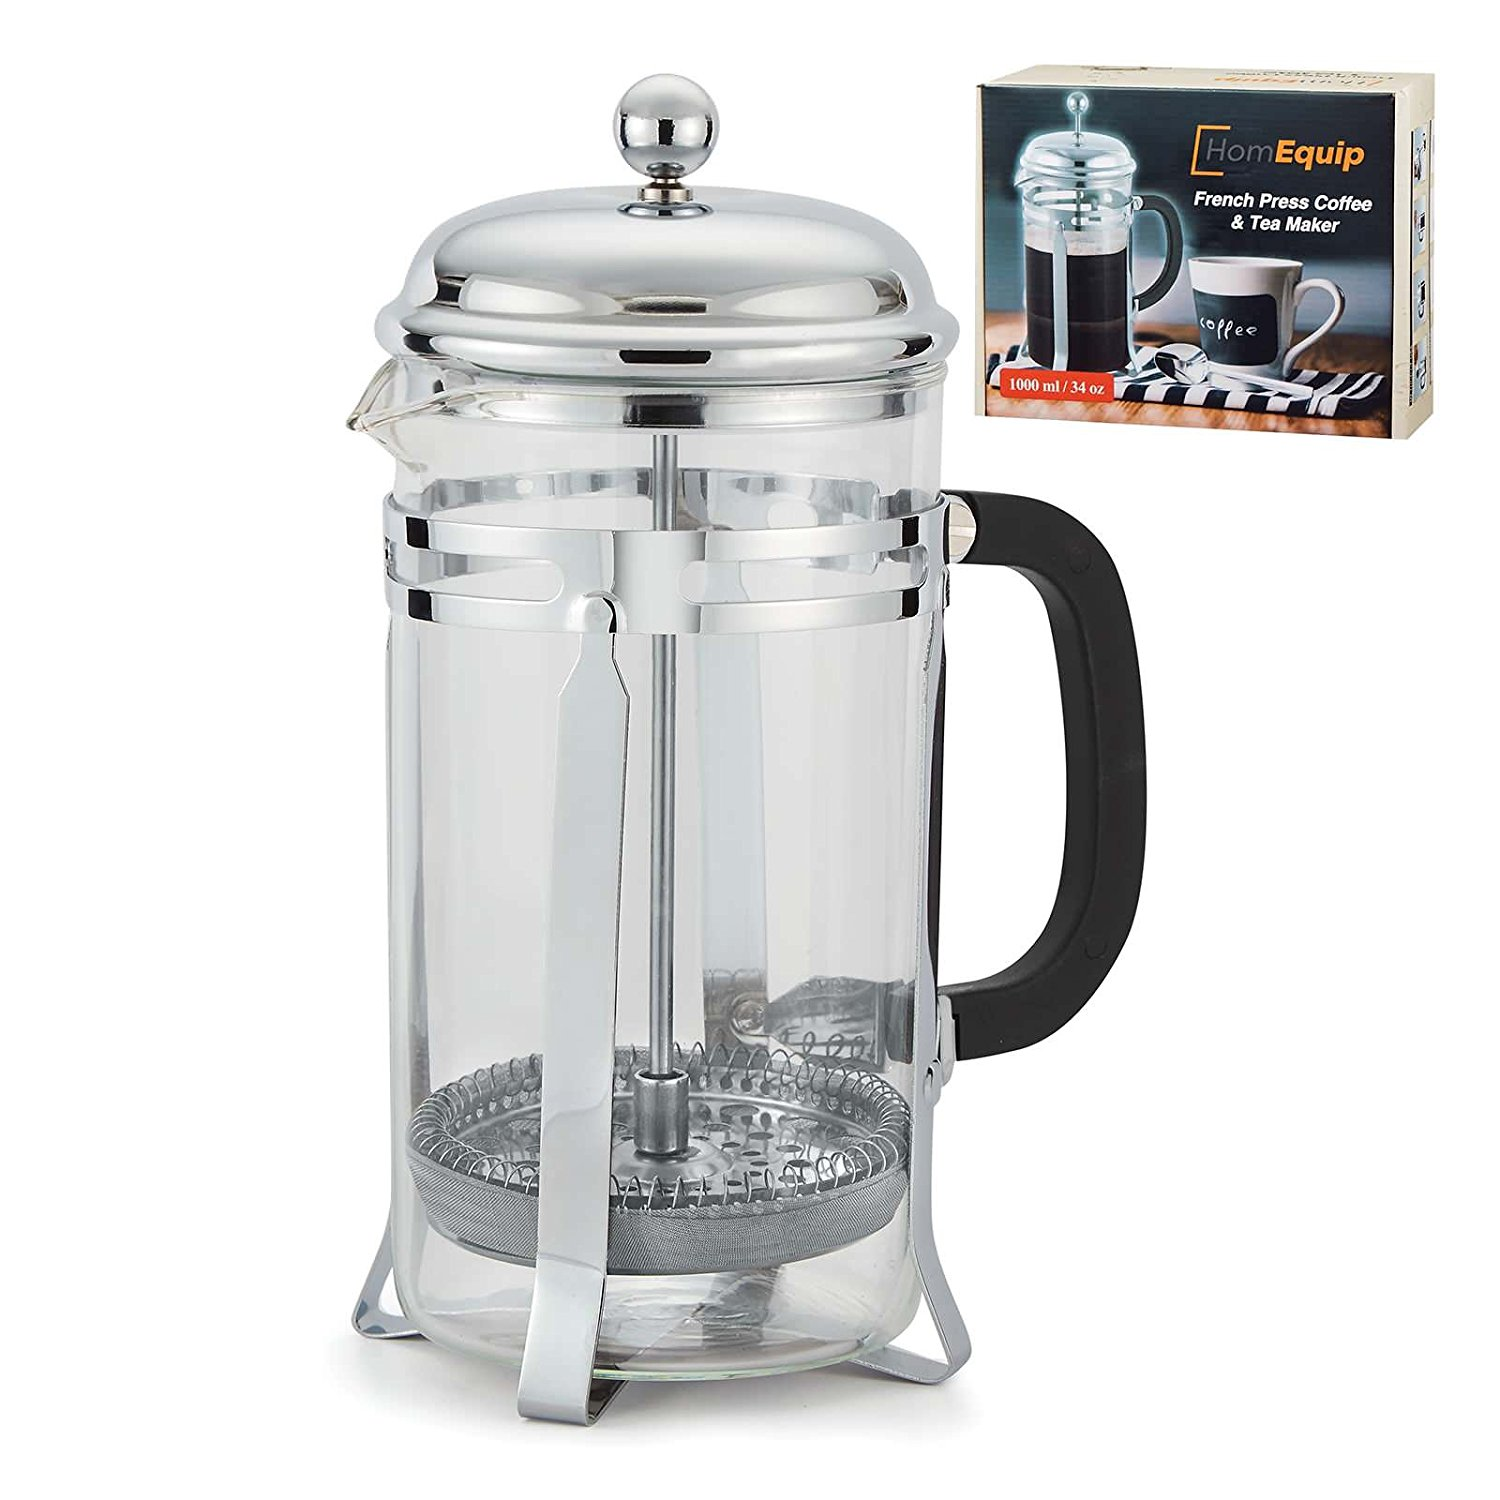 French Press Coffee Maker - Heat Resistant Borosilicate Glass Pot and Stainless Steel Triple Filter - Bonus Strainers, Spoons, Cleaning Brush and Gift Box - 8 Cups - by HomeEquip